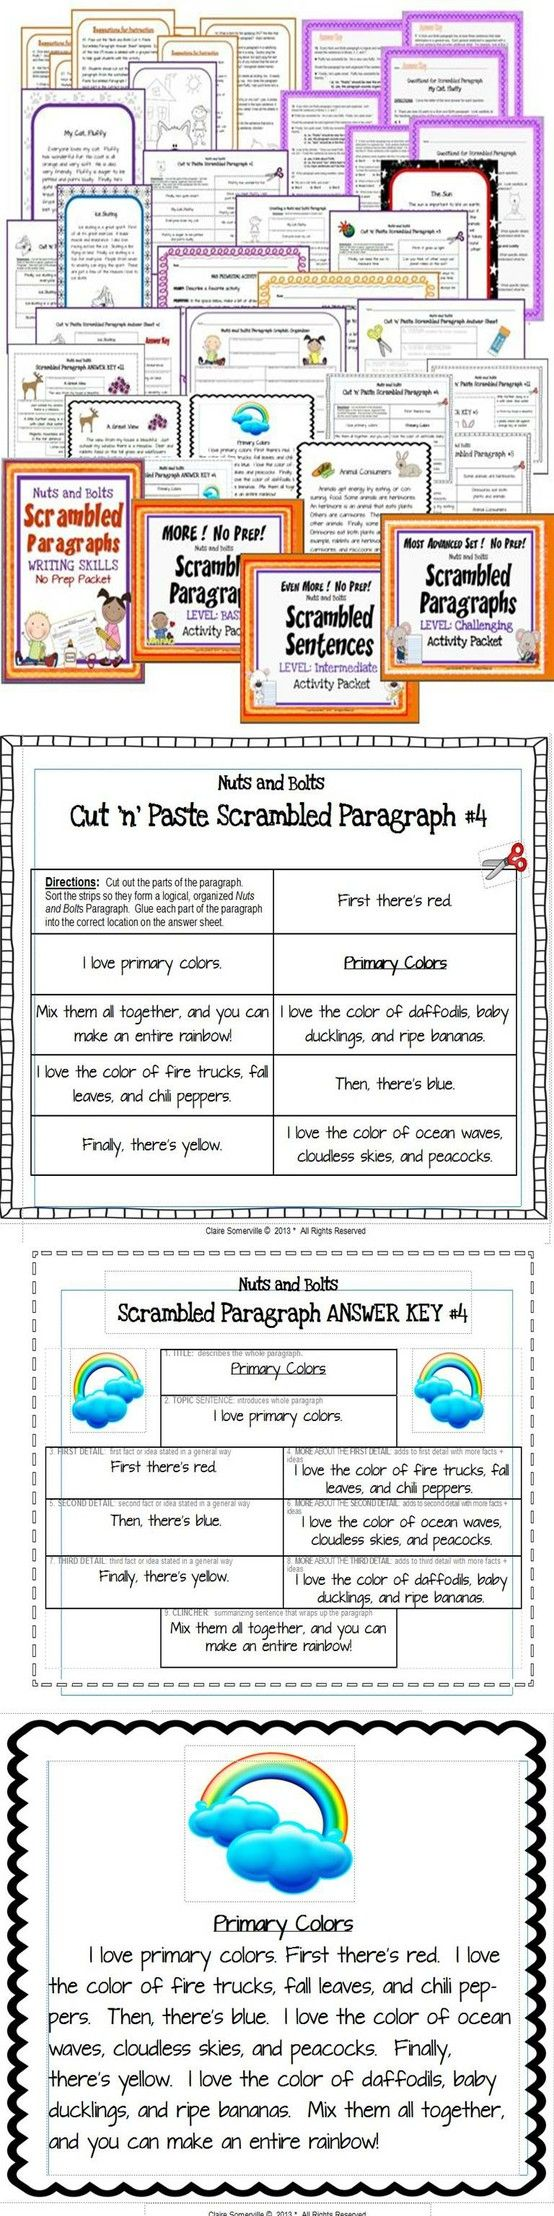 medium resolution of Scrambled Paragraphs 4-in-1 BUNDLE Activity Packets   Paragraph writing  activities